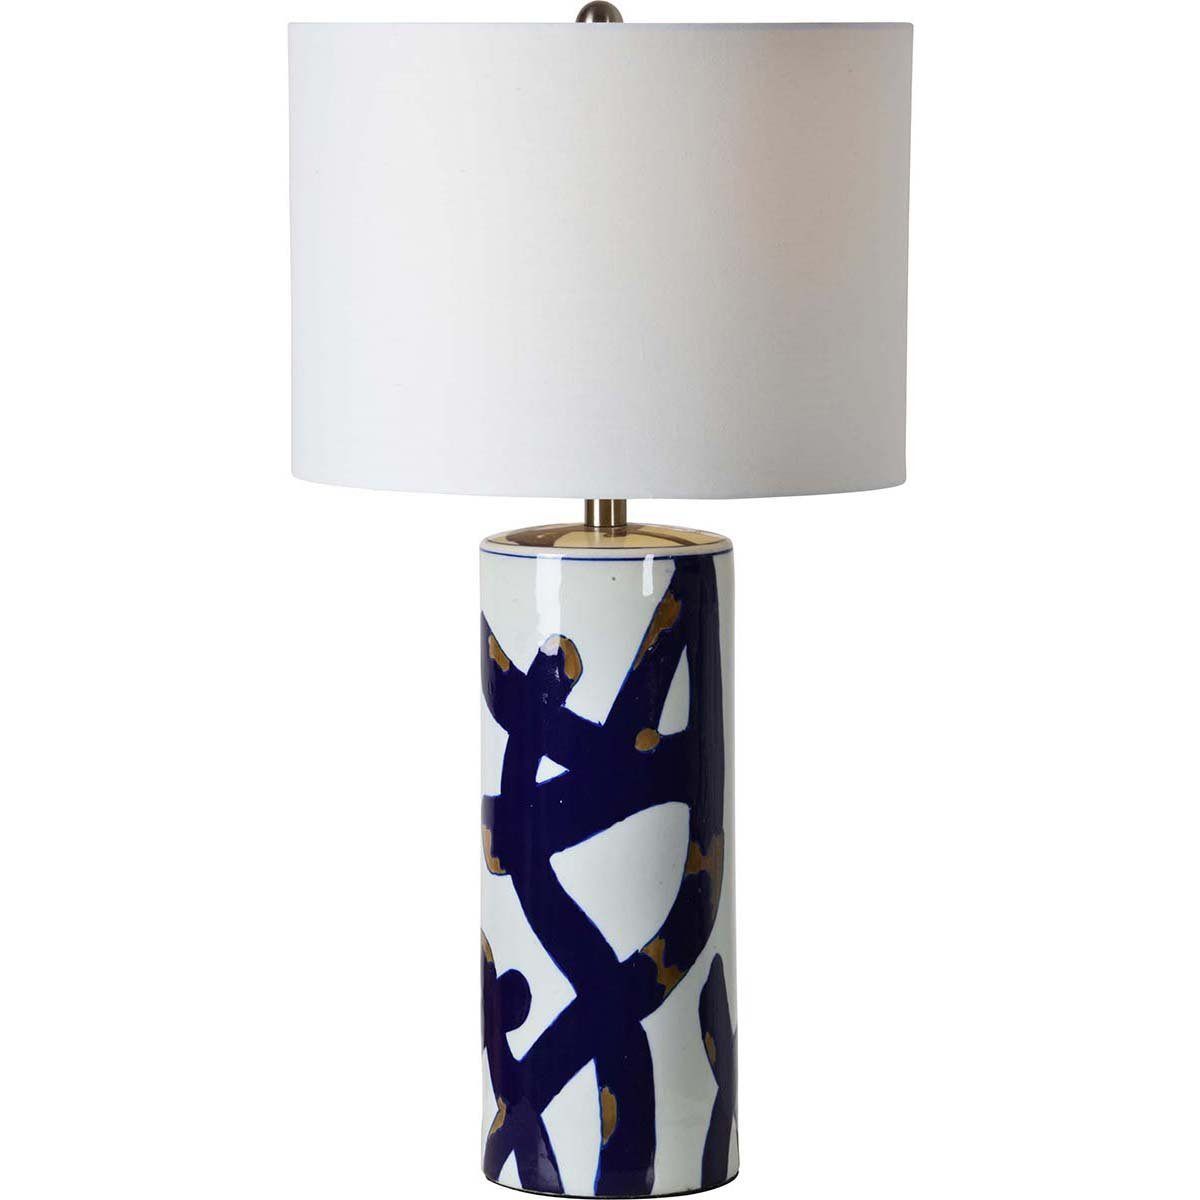 Charmant Get Quotations · Renwil Cobalt Table Lamp In Blue And White